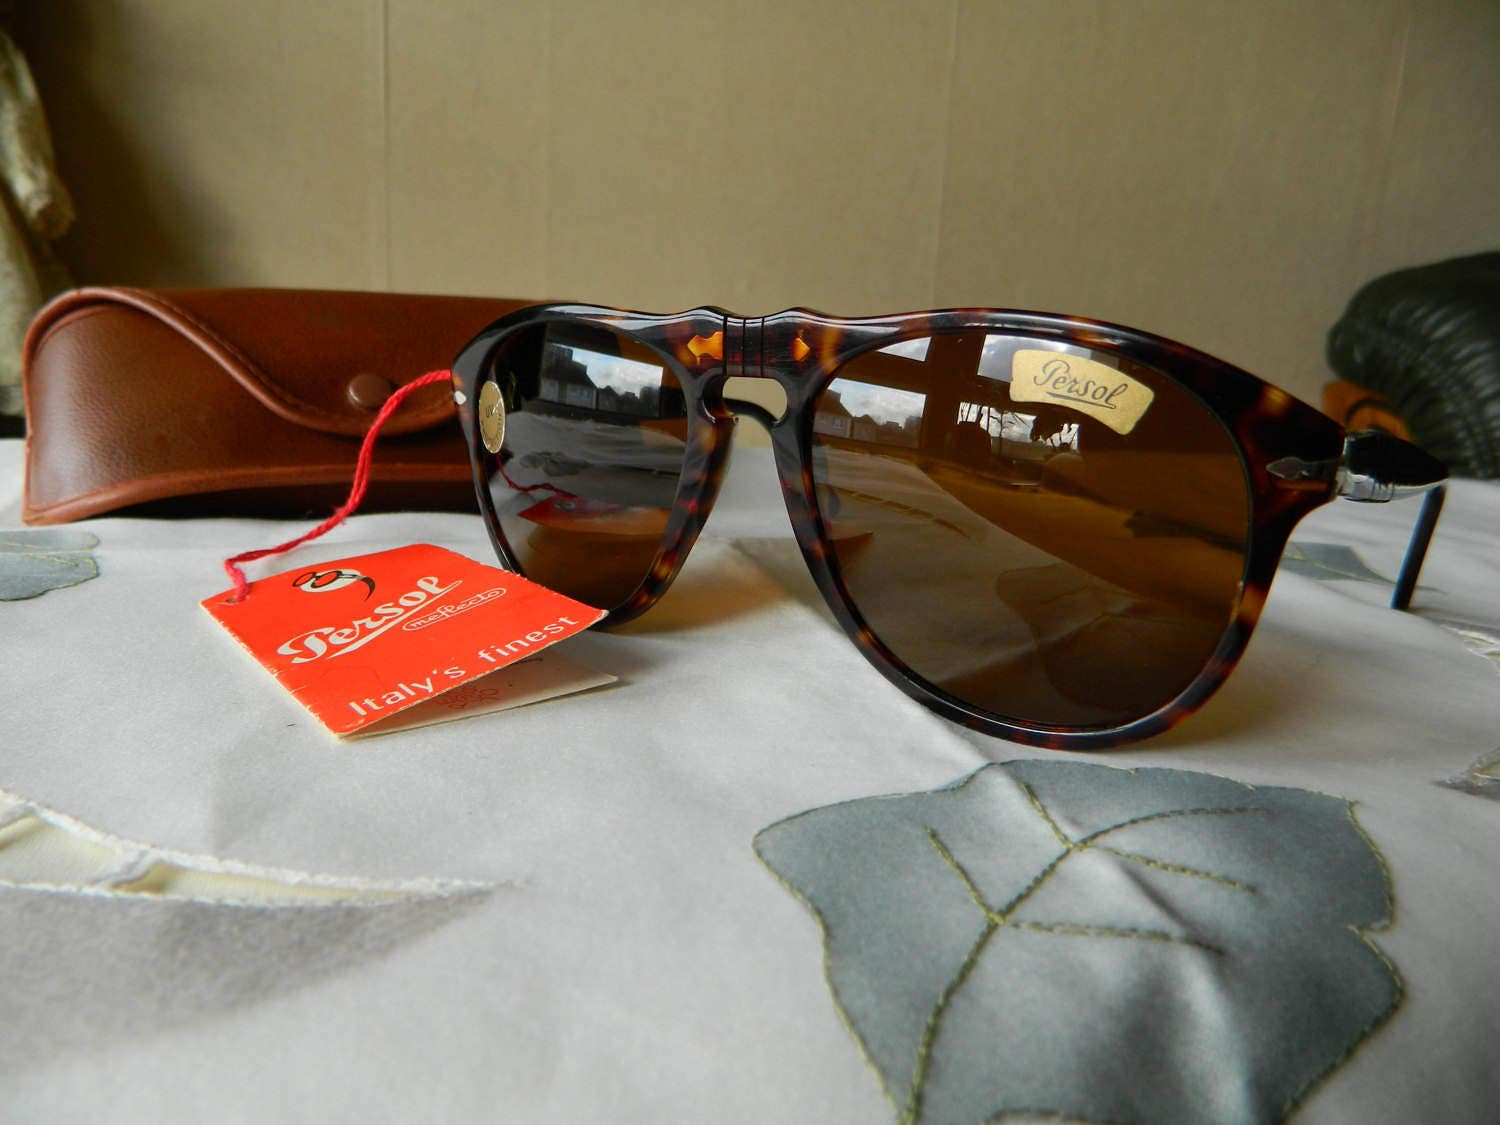 Jahrgang seltene Persol RATTI 649/5 MEFLECTO System in X-groß